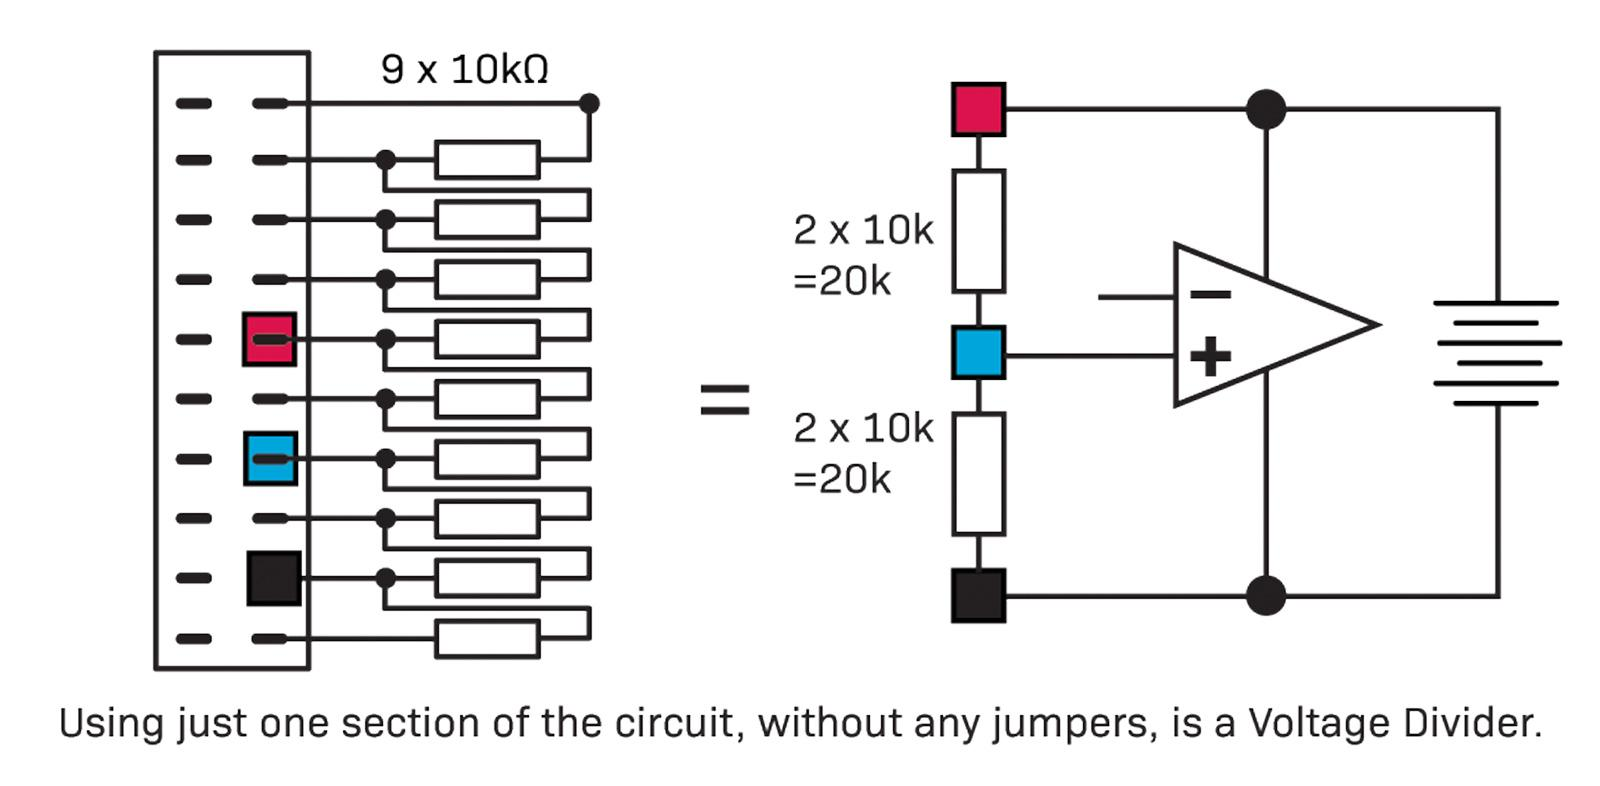 Programmable Resistor Decade Board Diyode Magazine Resistive Voltage Divider Schematic Placing Jumper Wires Across The Two And A Third Between Them To Make An Equal Split Or By Using Resistors On One Side 1 3 So